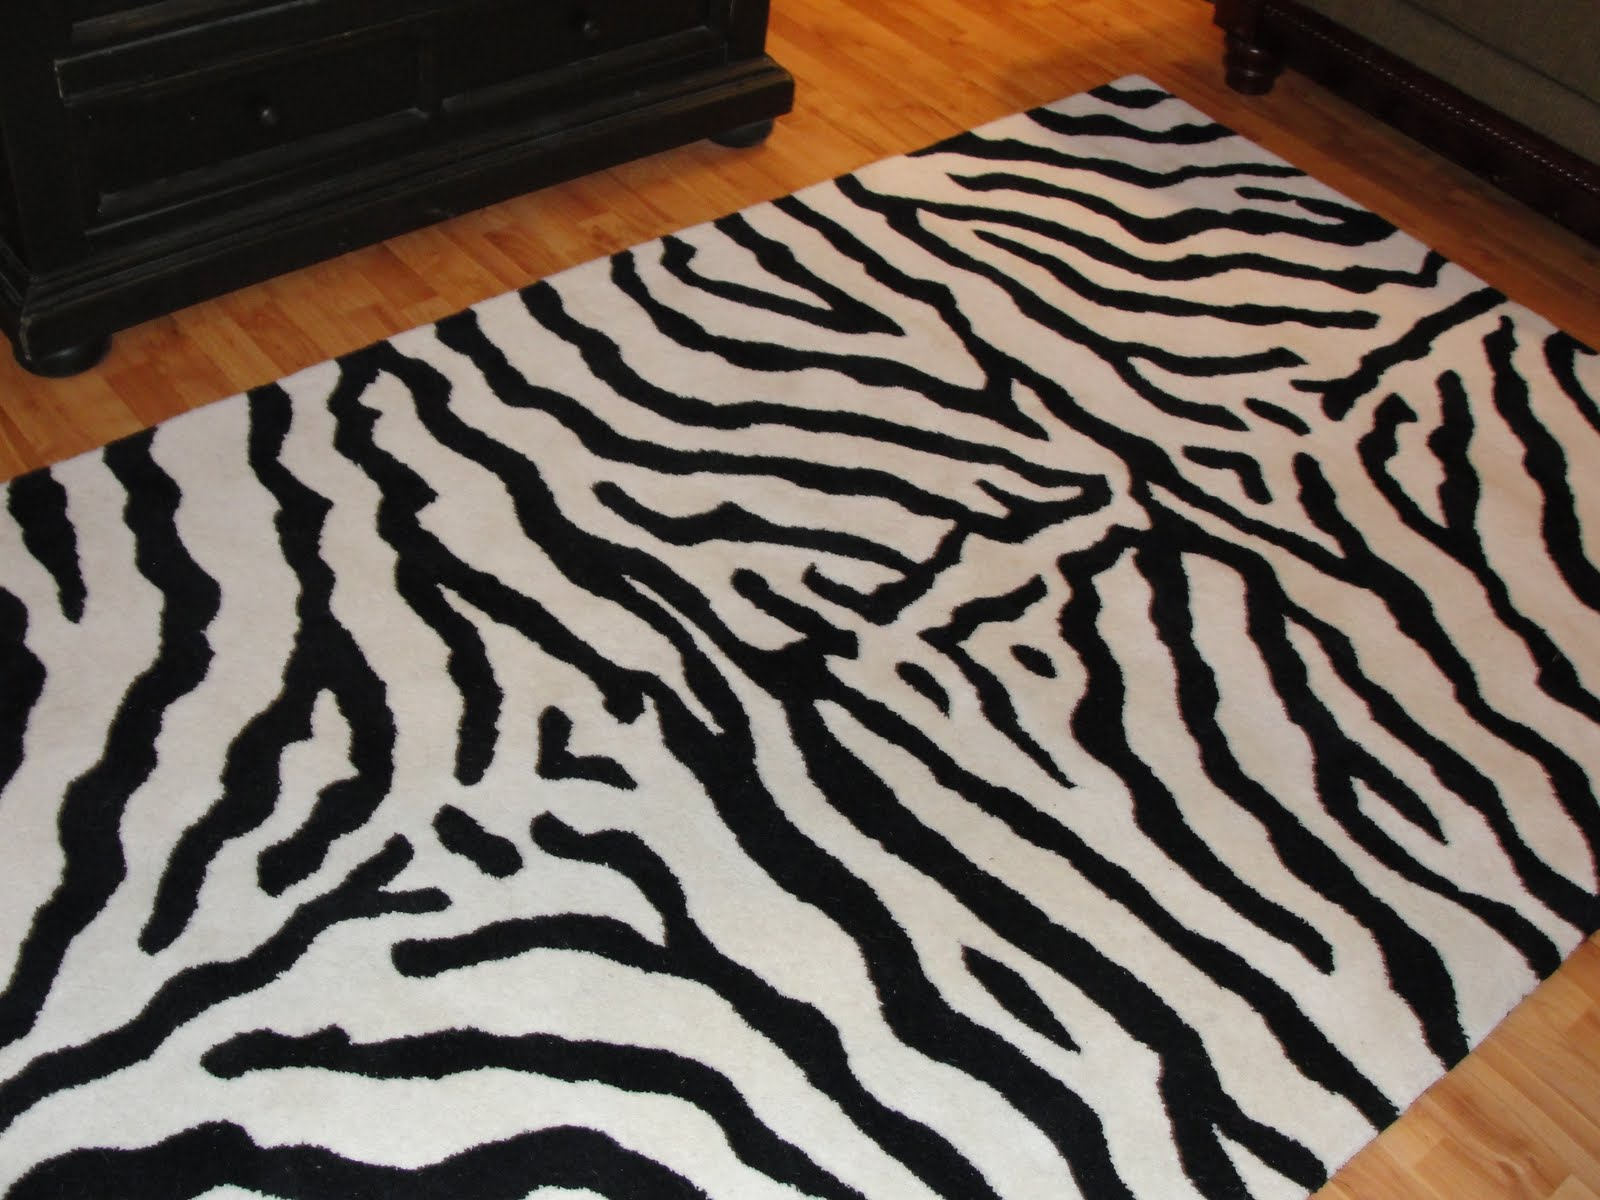 People, I Desperately Need Your Help. My Wool Rug Will Not Stop Shedding  And I Am About To Go Insane. I Love My Zebra Rug, But If I Have To See One  ...